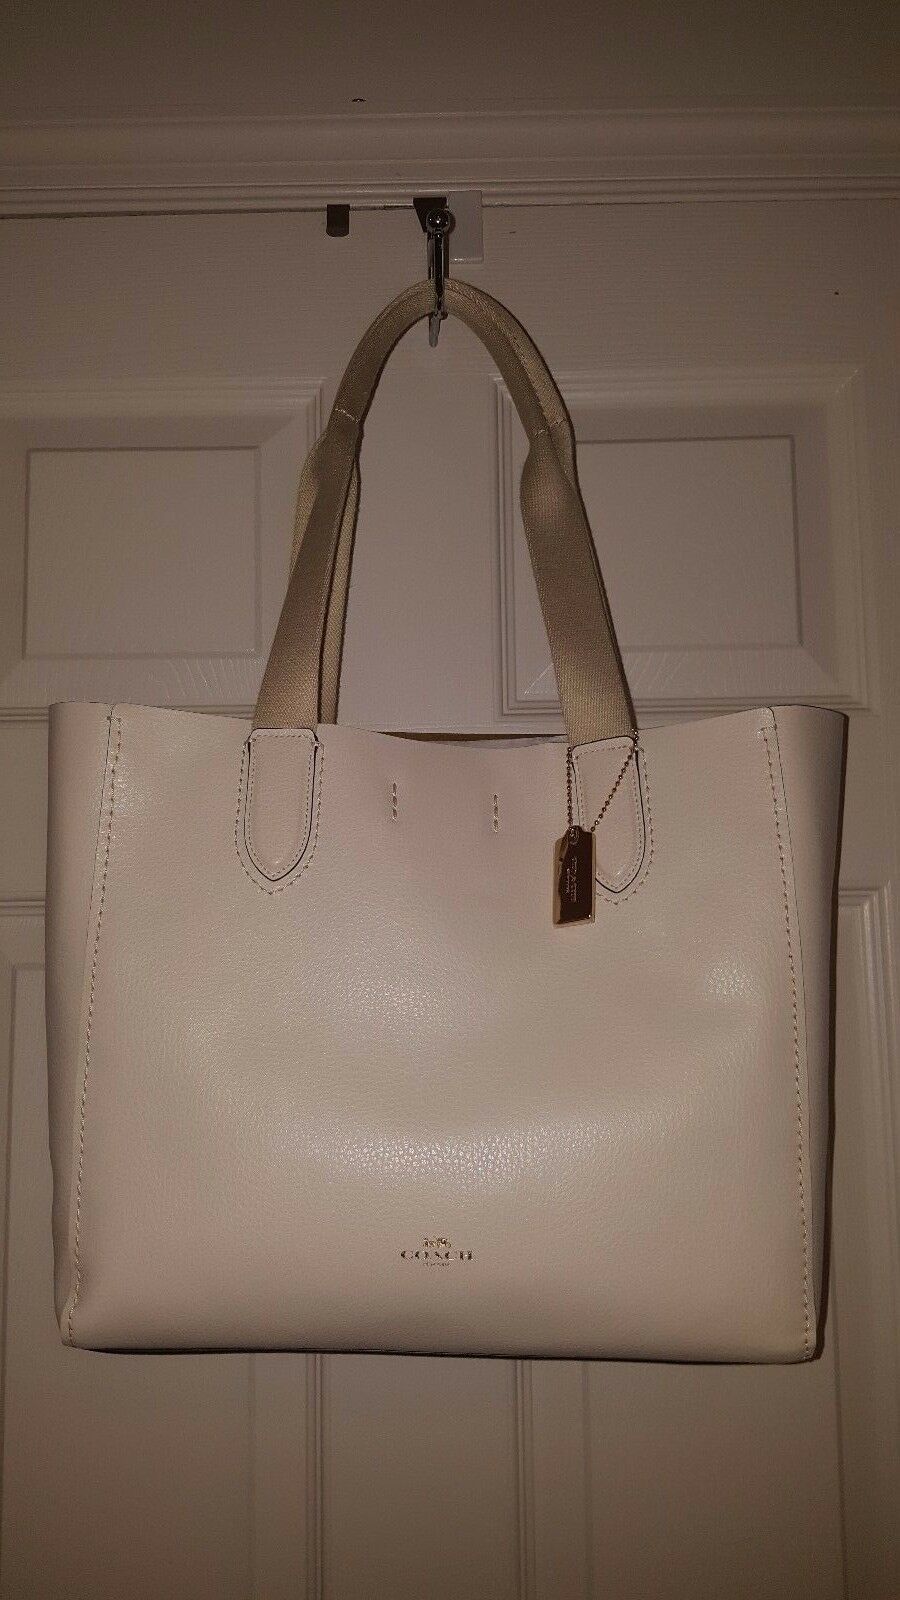 b1d4c29a553c Coach F58660 Derby Tote in Pebble Leather Chalk for sale online